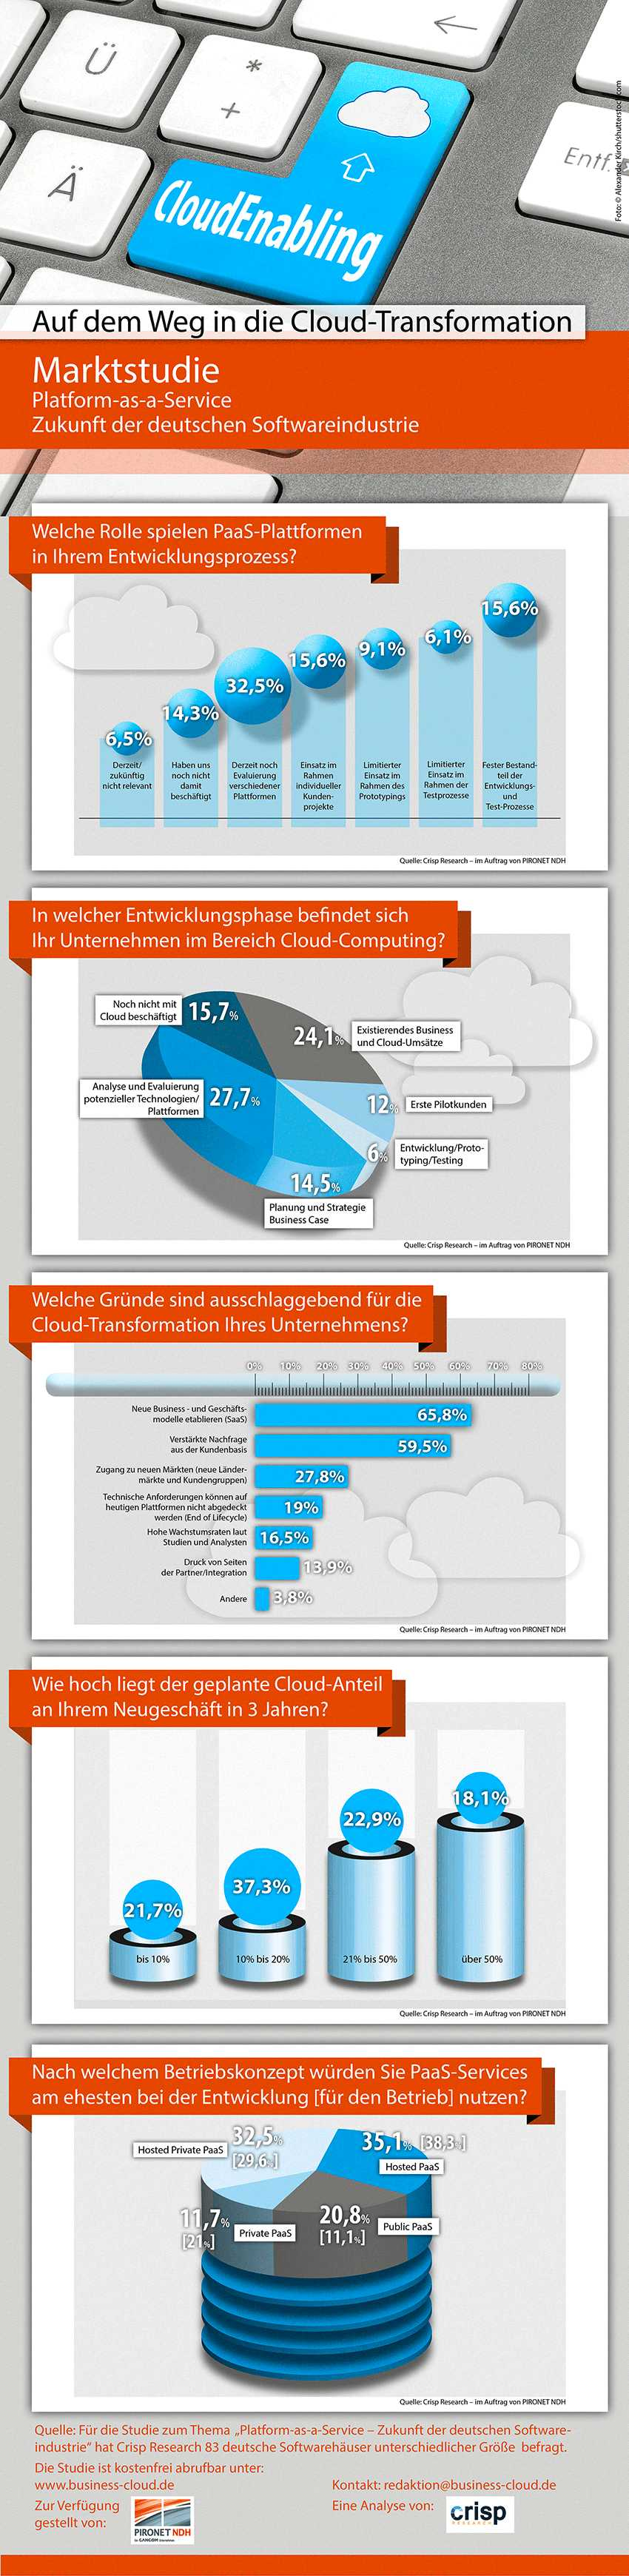 infografik Crisp_PaaS_Cloud-Transformation